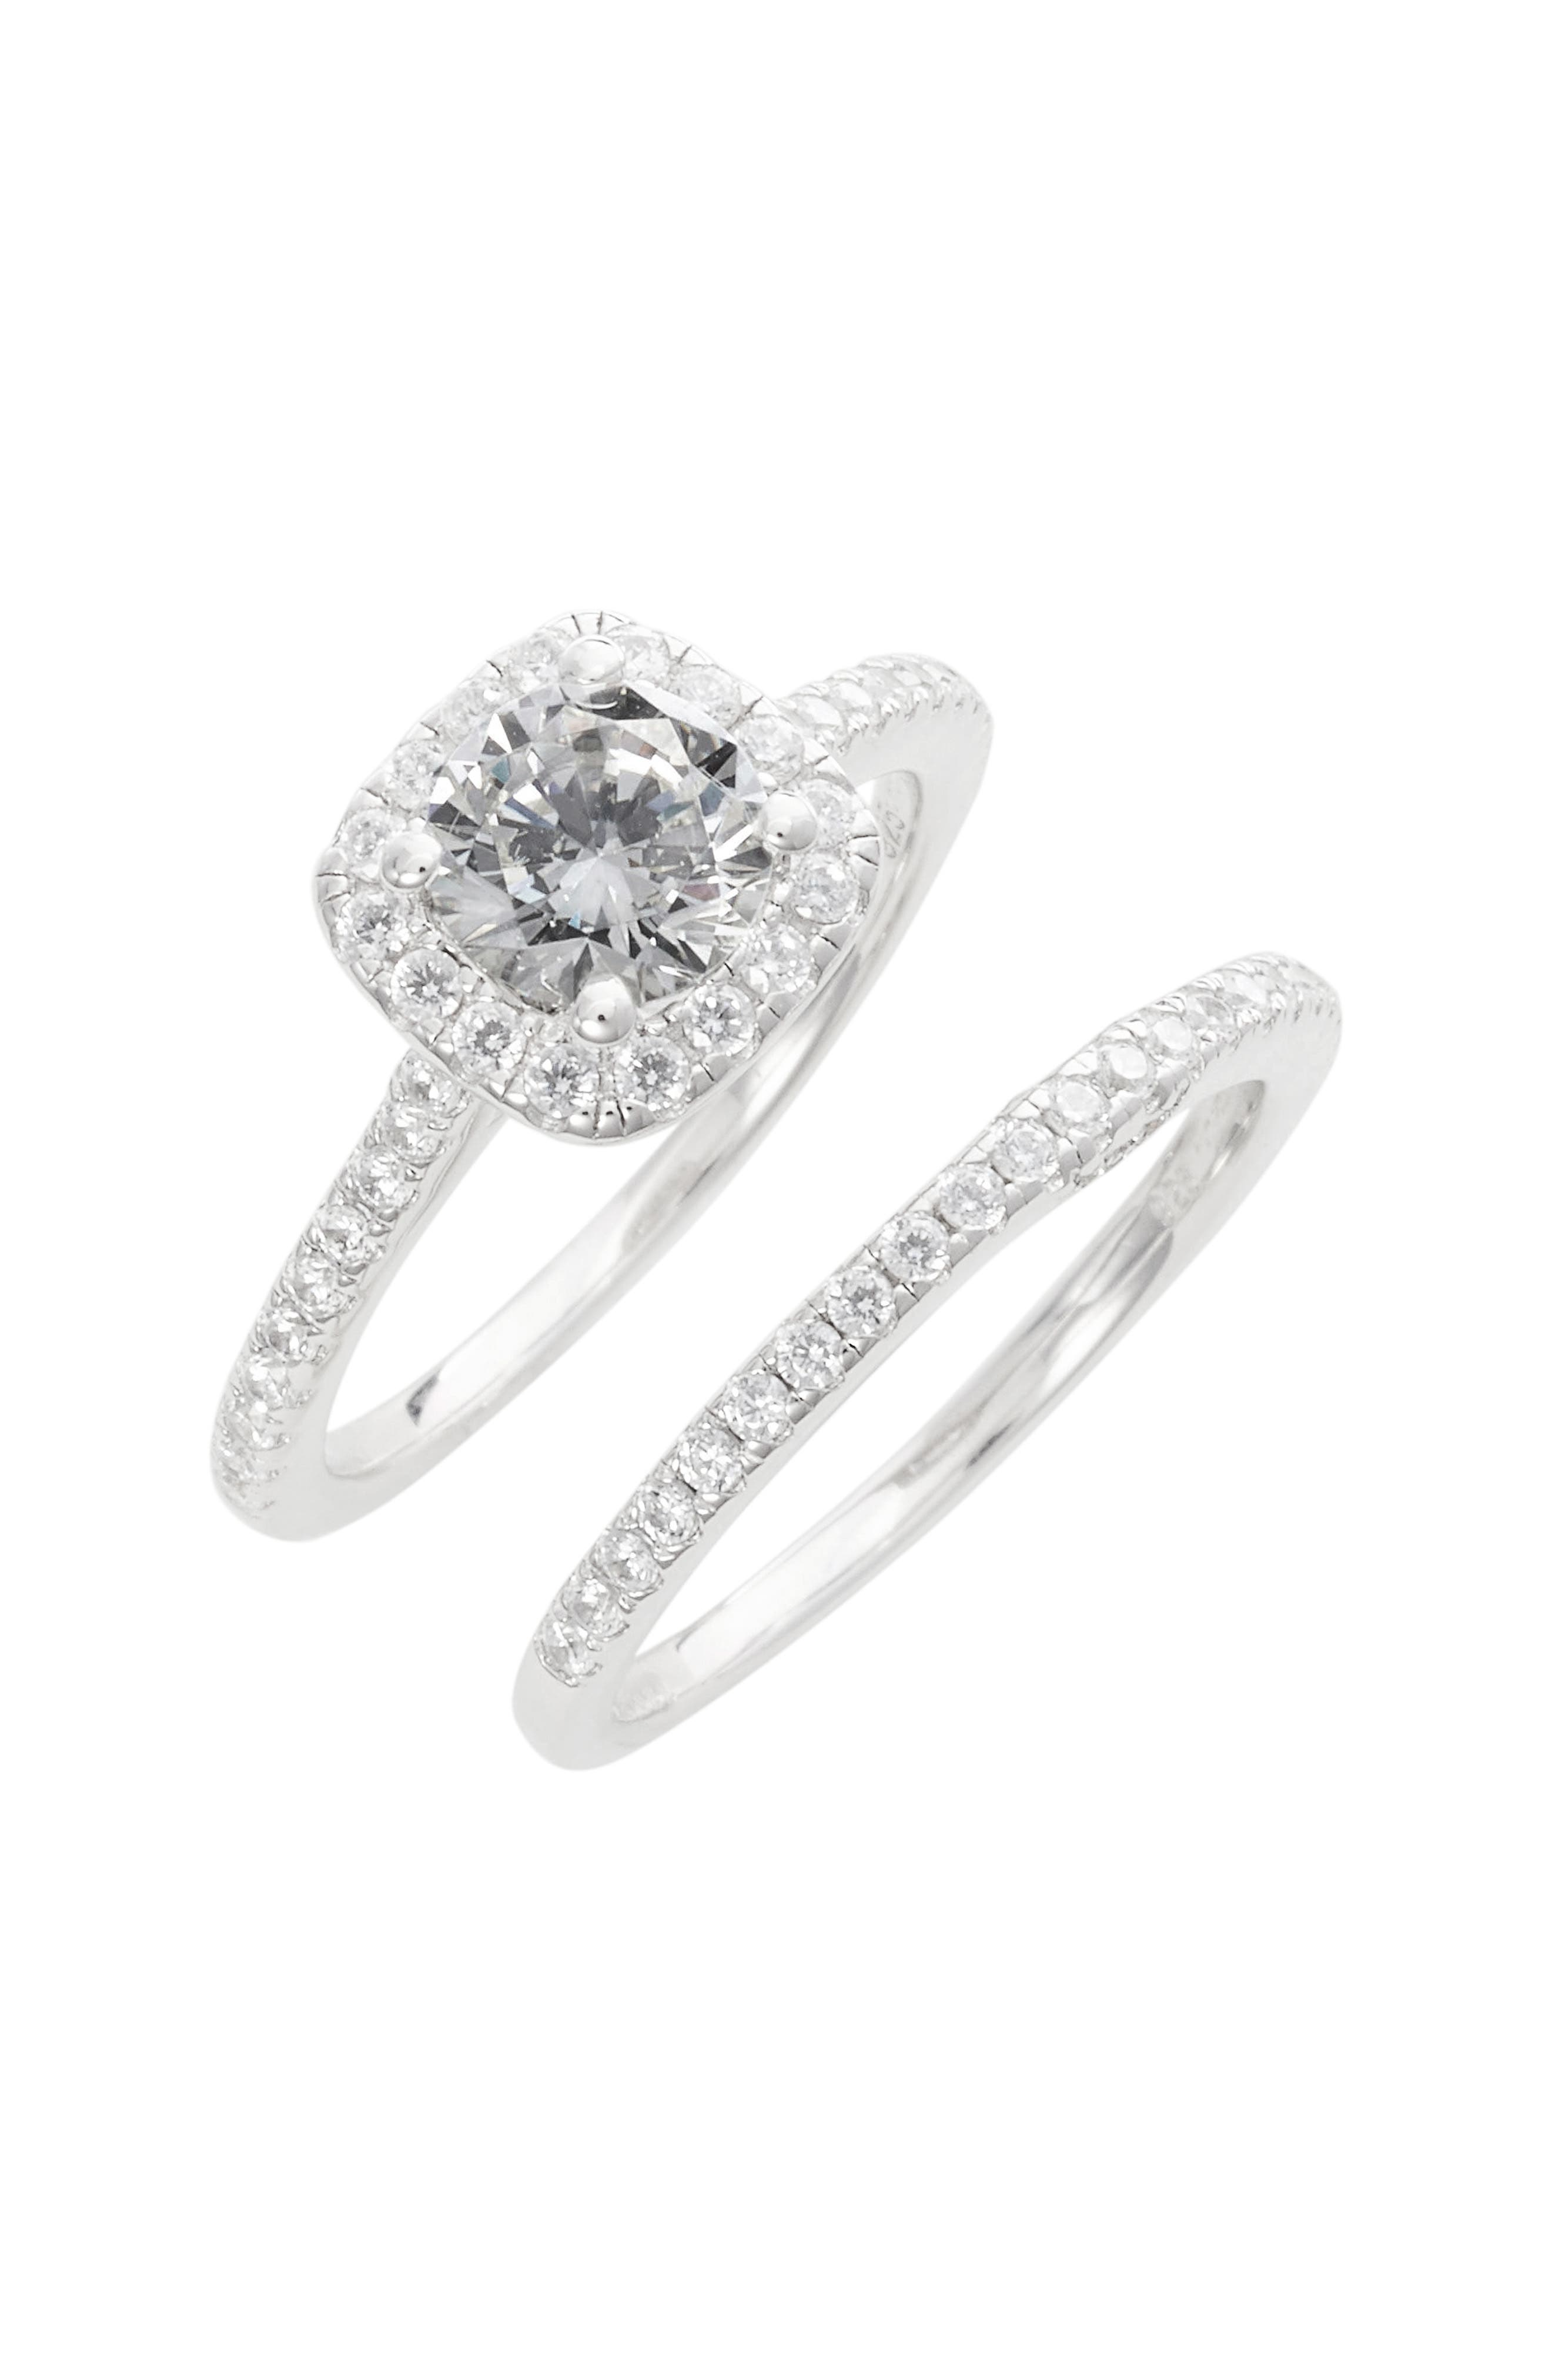 Simulated Diamond Engagement Ring & Band,                         Main,                         color, SILVER